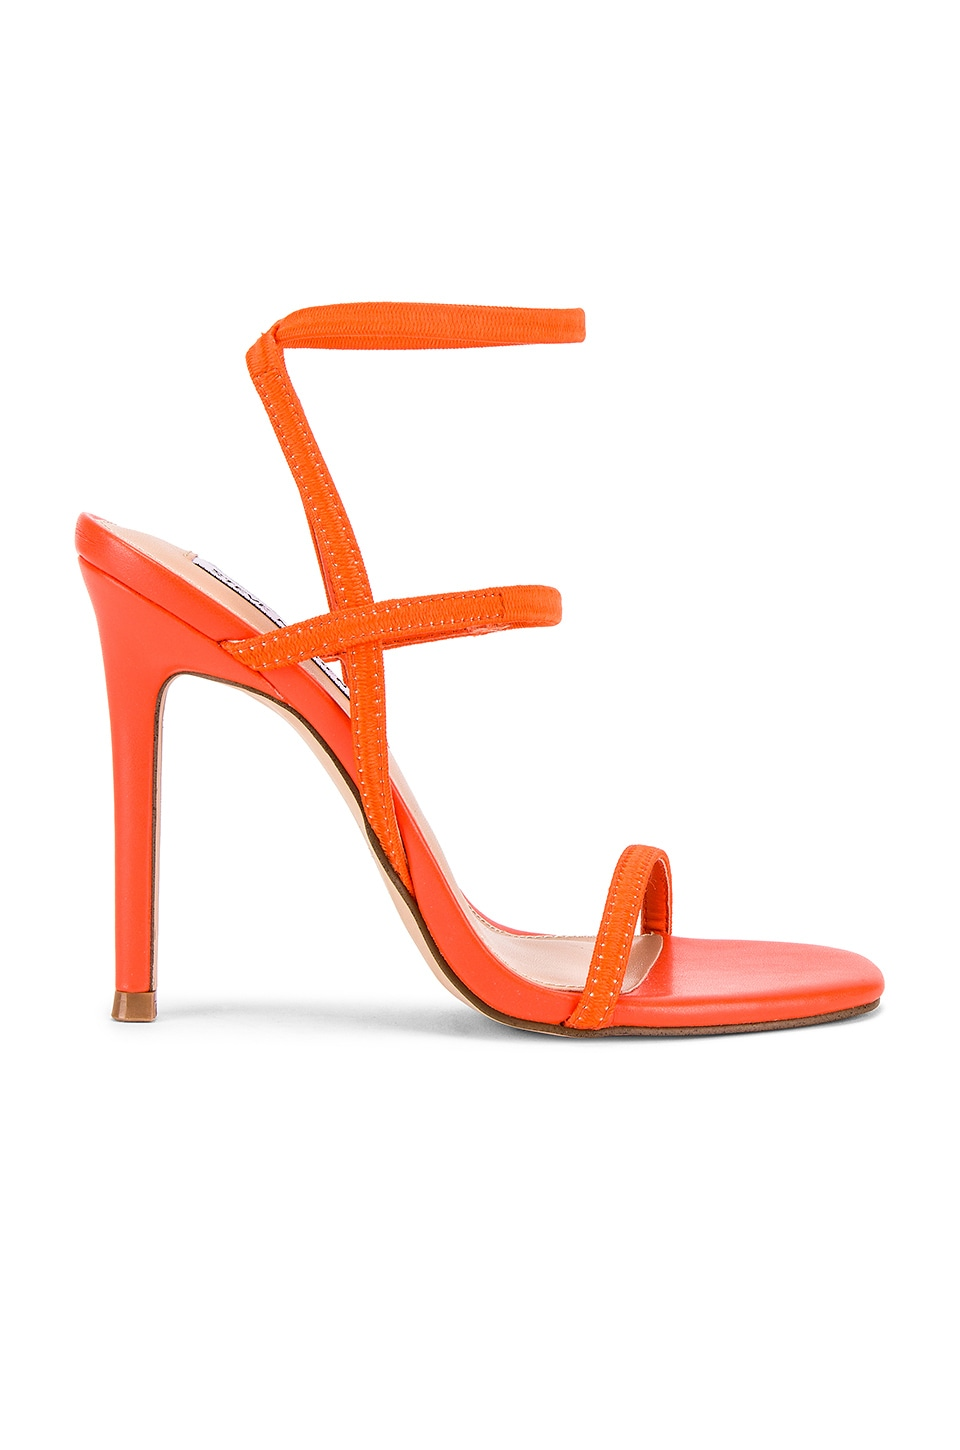 Steve Madden Nectur Strappy Heel in Red & Orange